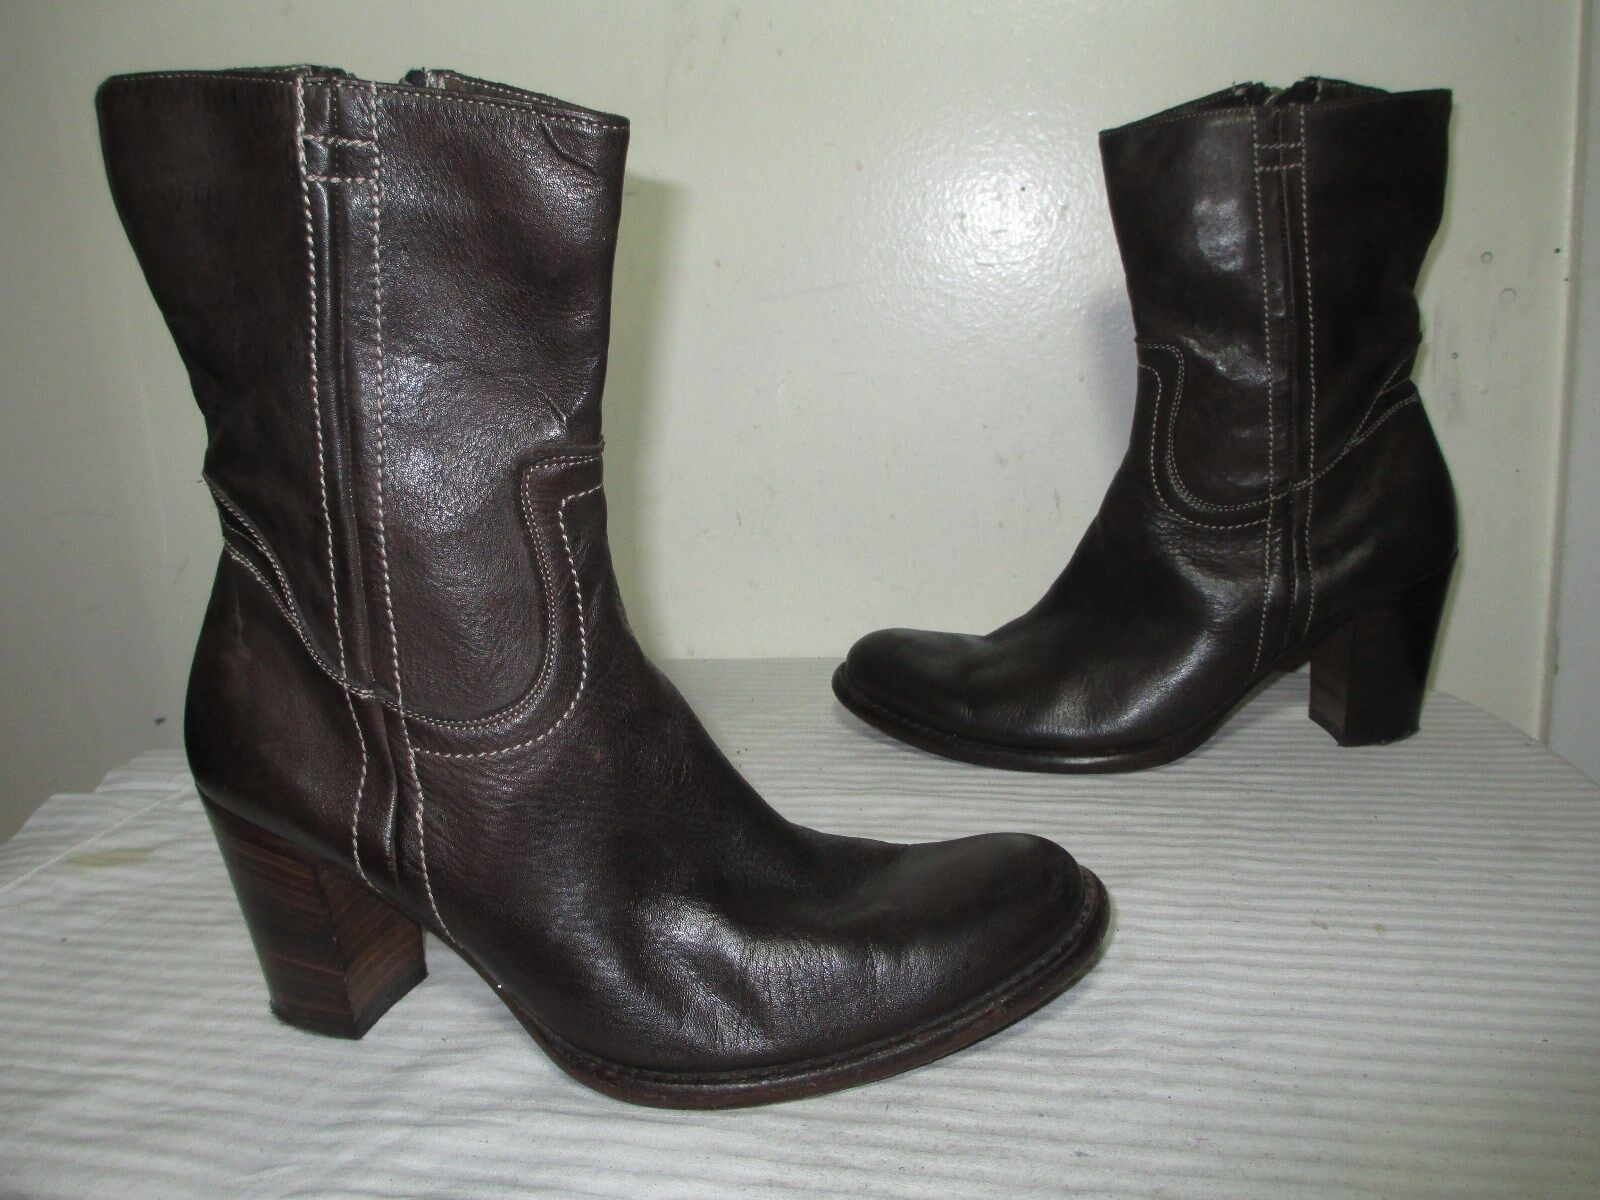 PAUL SMITH WOMEN'S BROWN LEATHER ZIP HEEL ANKLE BOOTS MADE IN ITALY SZ 38 US 7.5